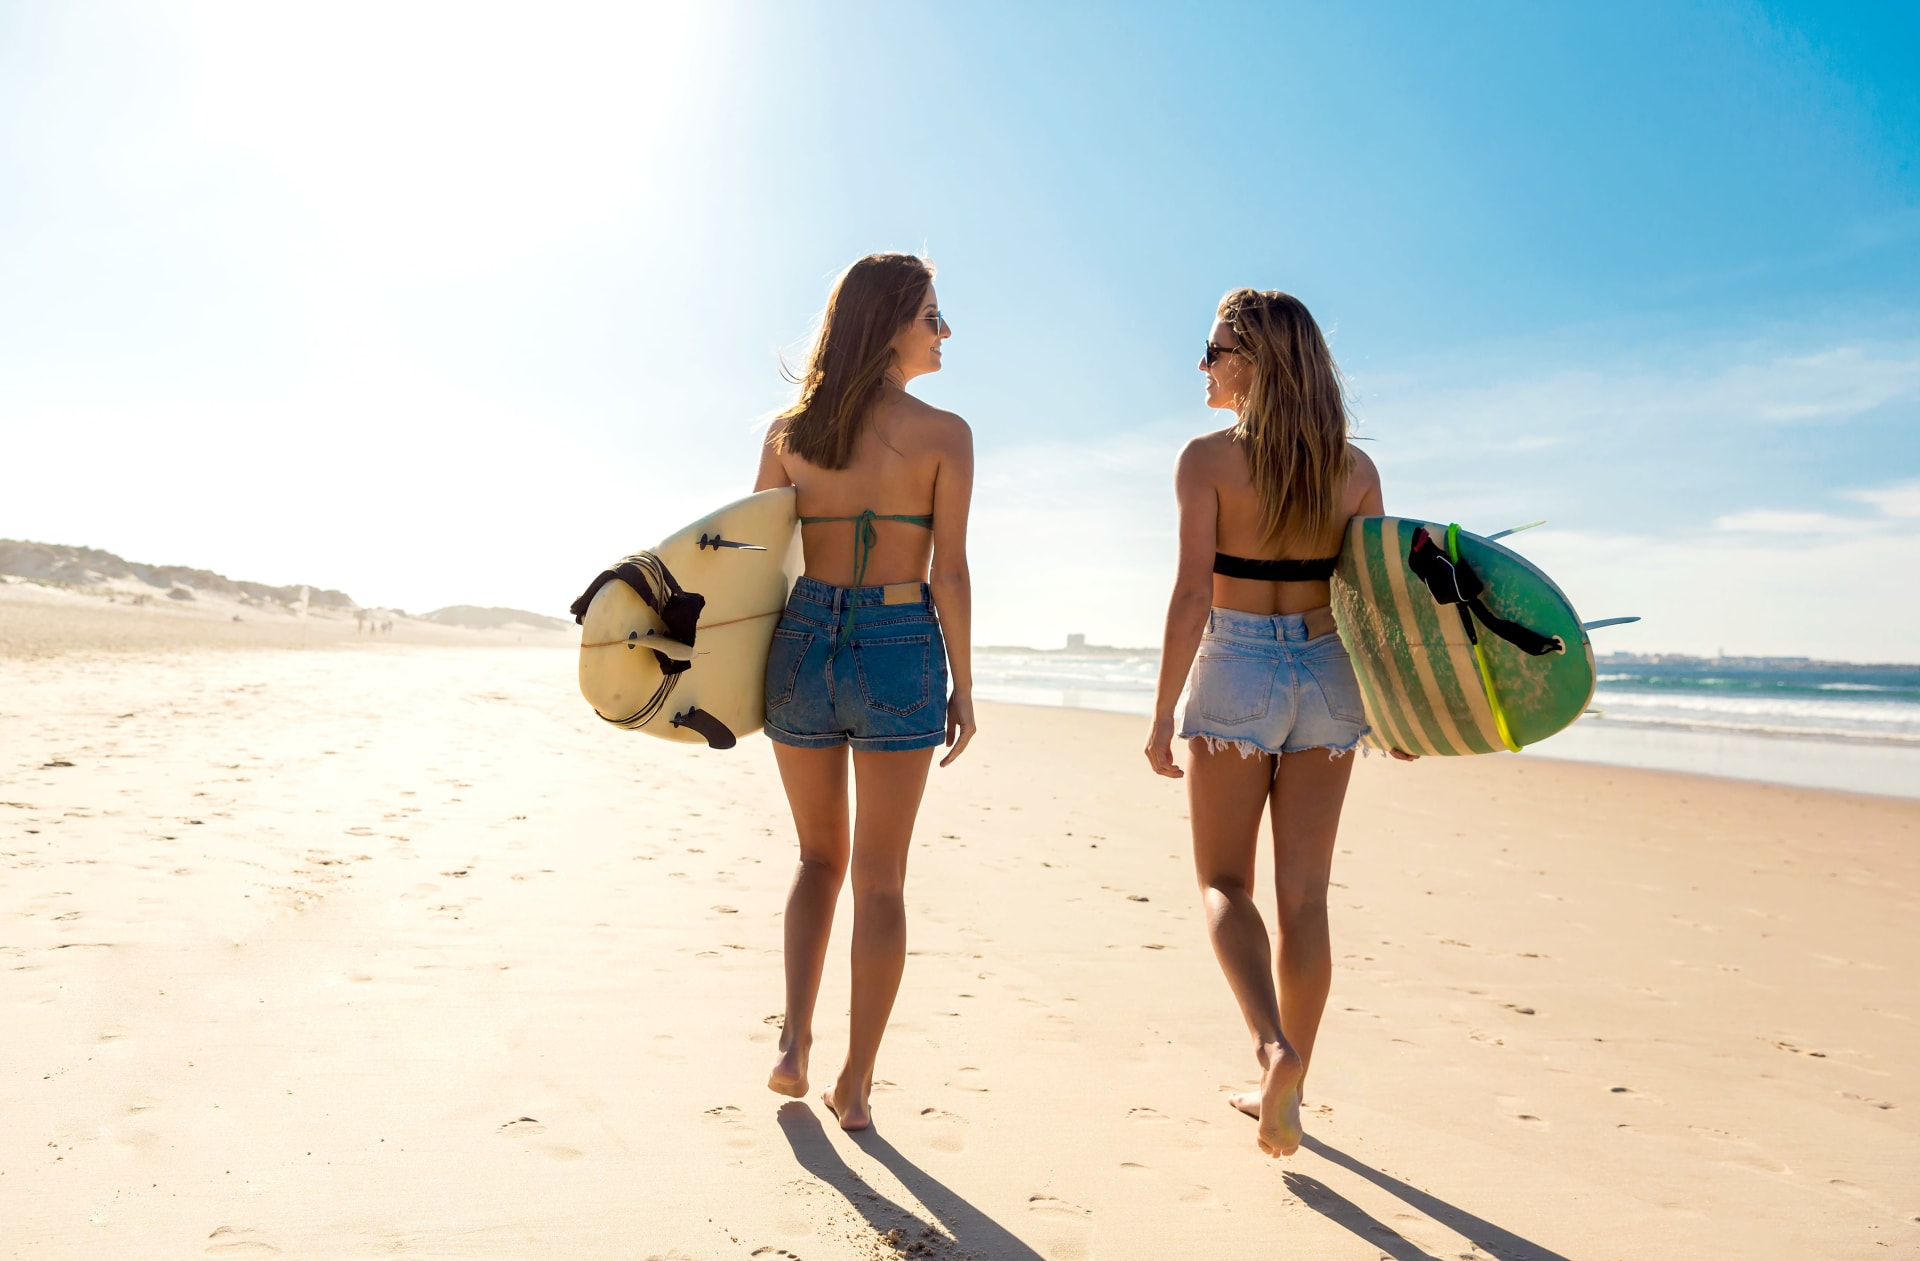 Two women walking on the beach and holding surf boards